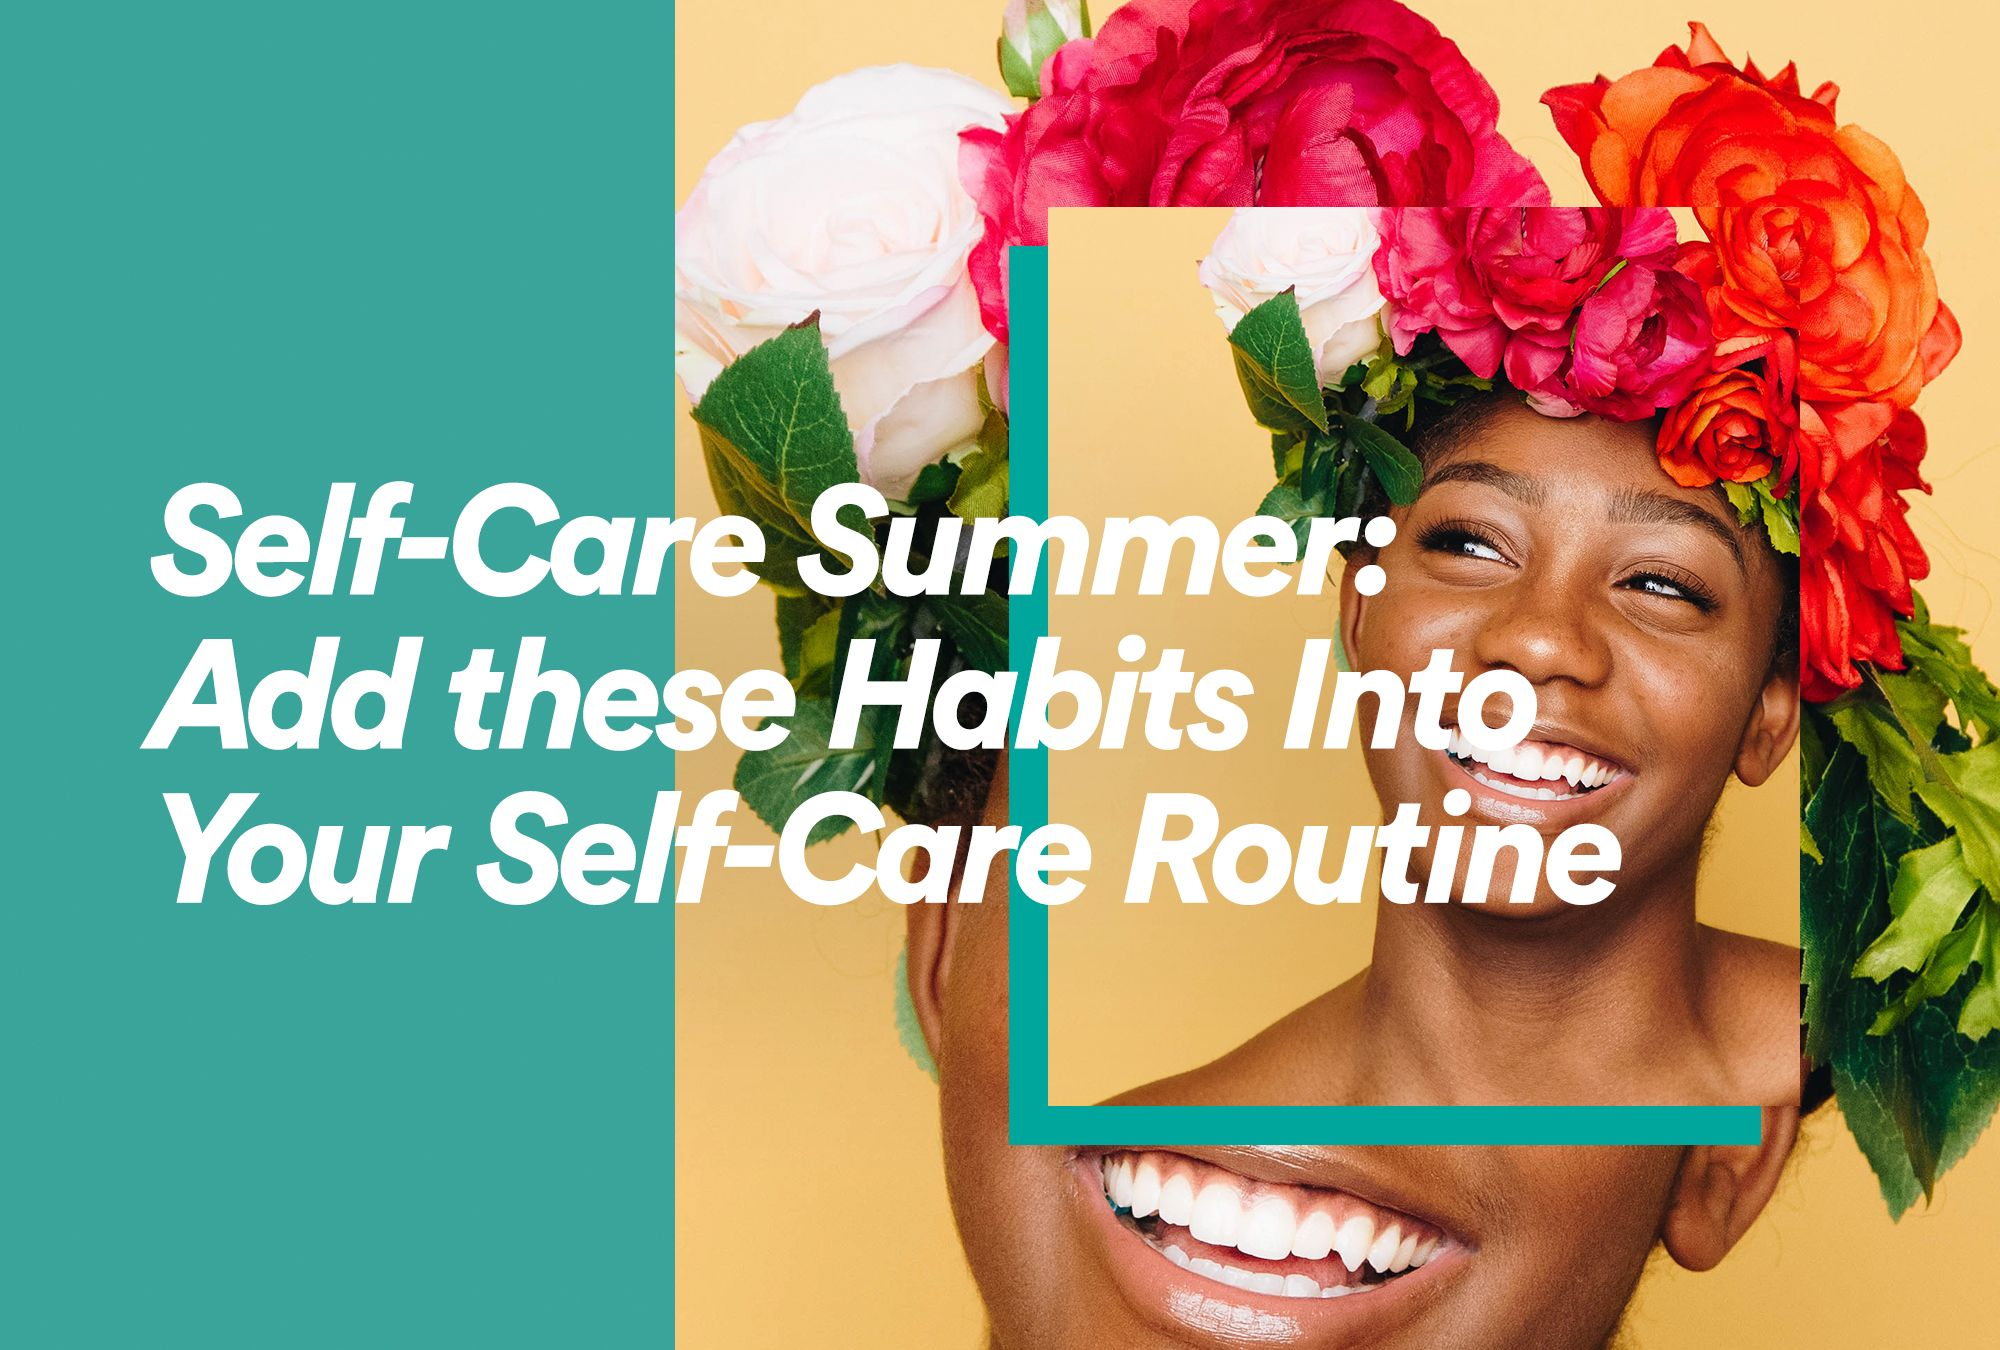 Add these Habits to Your Self-Care Routine